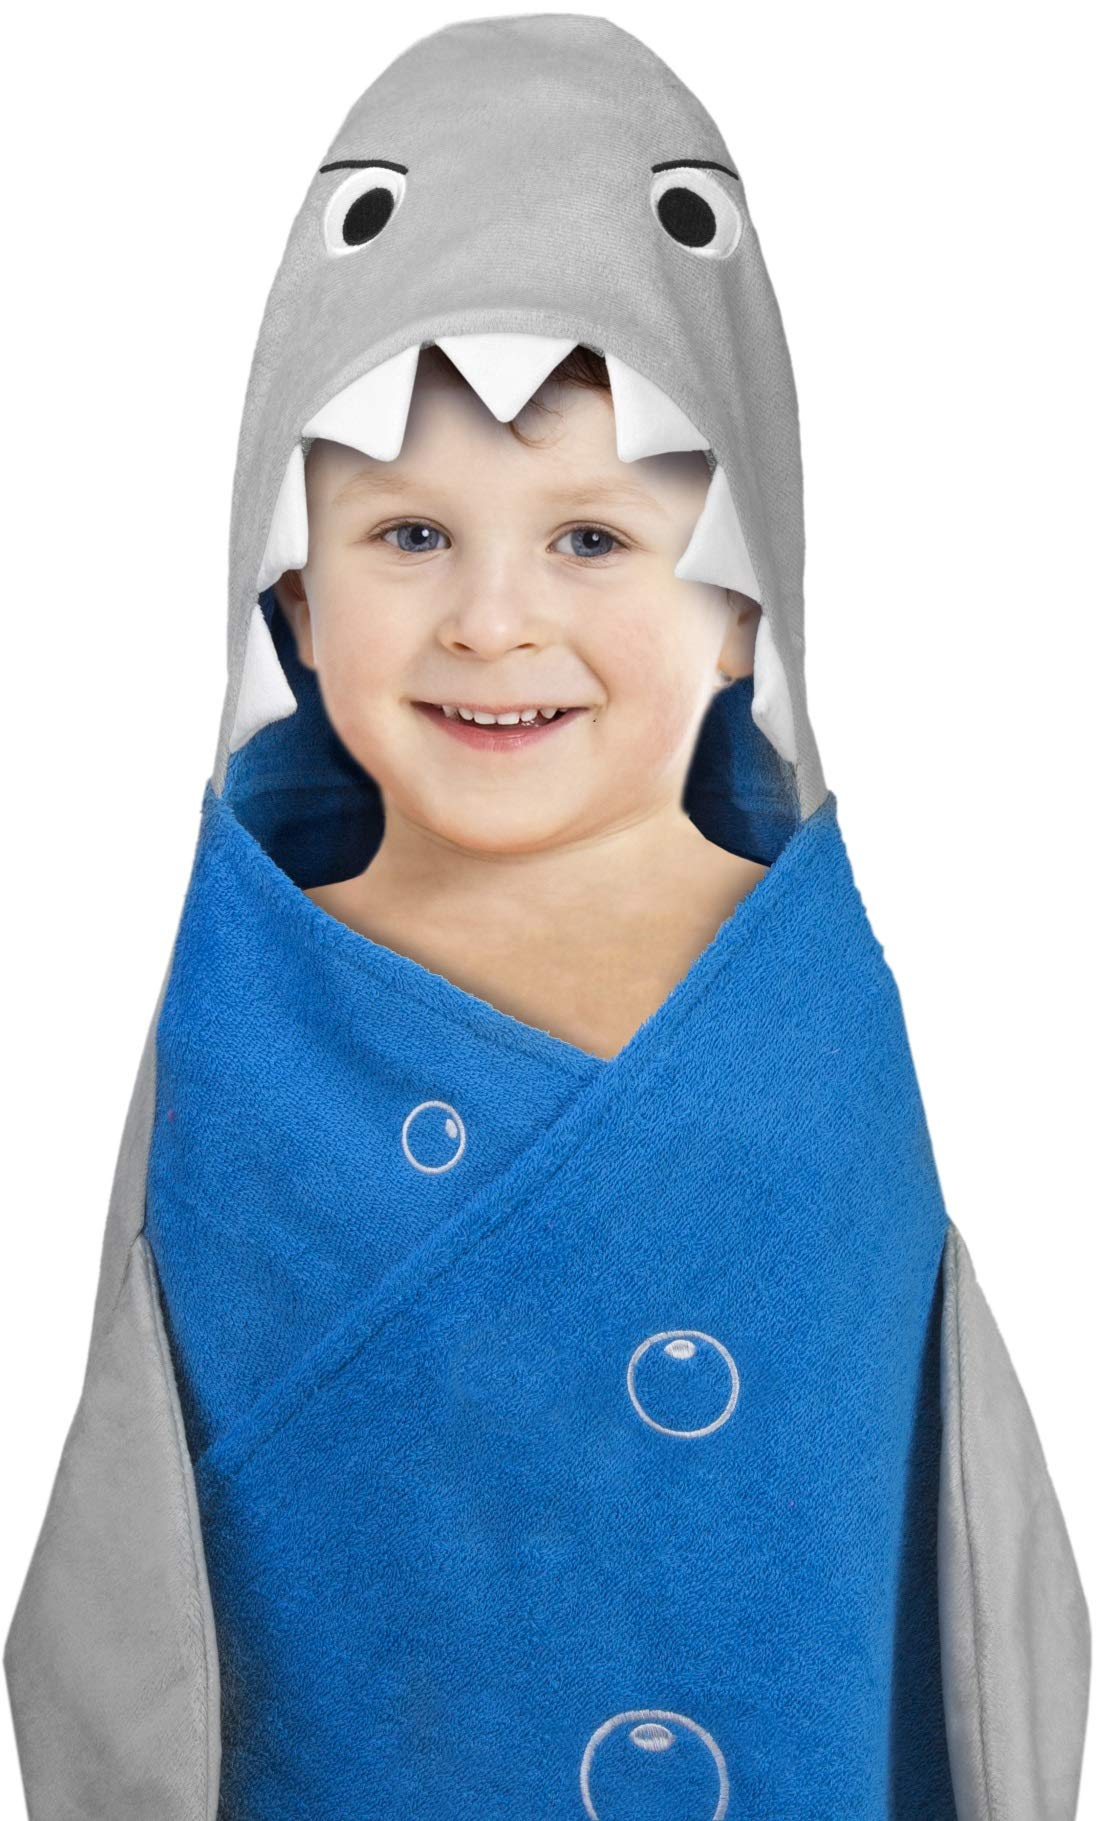 Hooded Towel For Kids, Oversize Cotton Character Hood Towel - Makes Getting Dry Fun - Ideal Beach Towels for Toddlers and Small Children - Use at the Pool or Bath Time, 26 x 47'', Shark w/ Fish